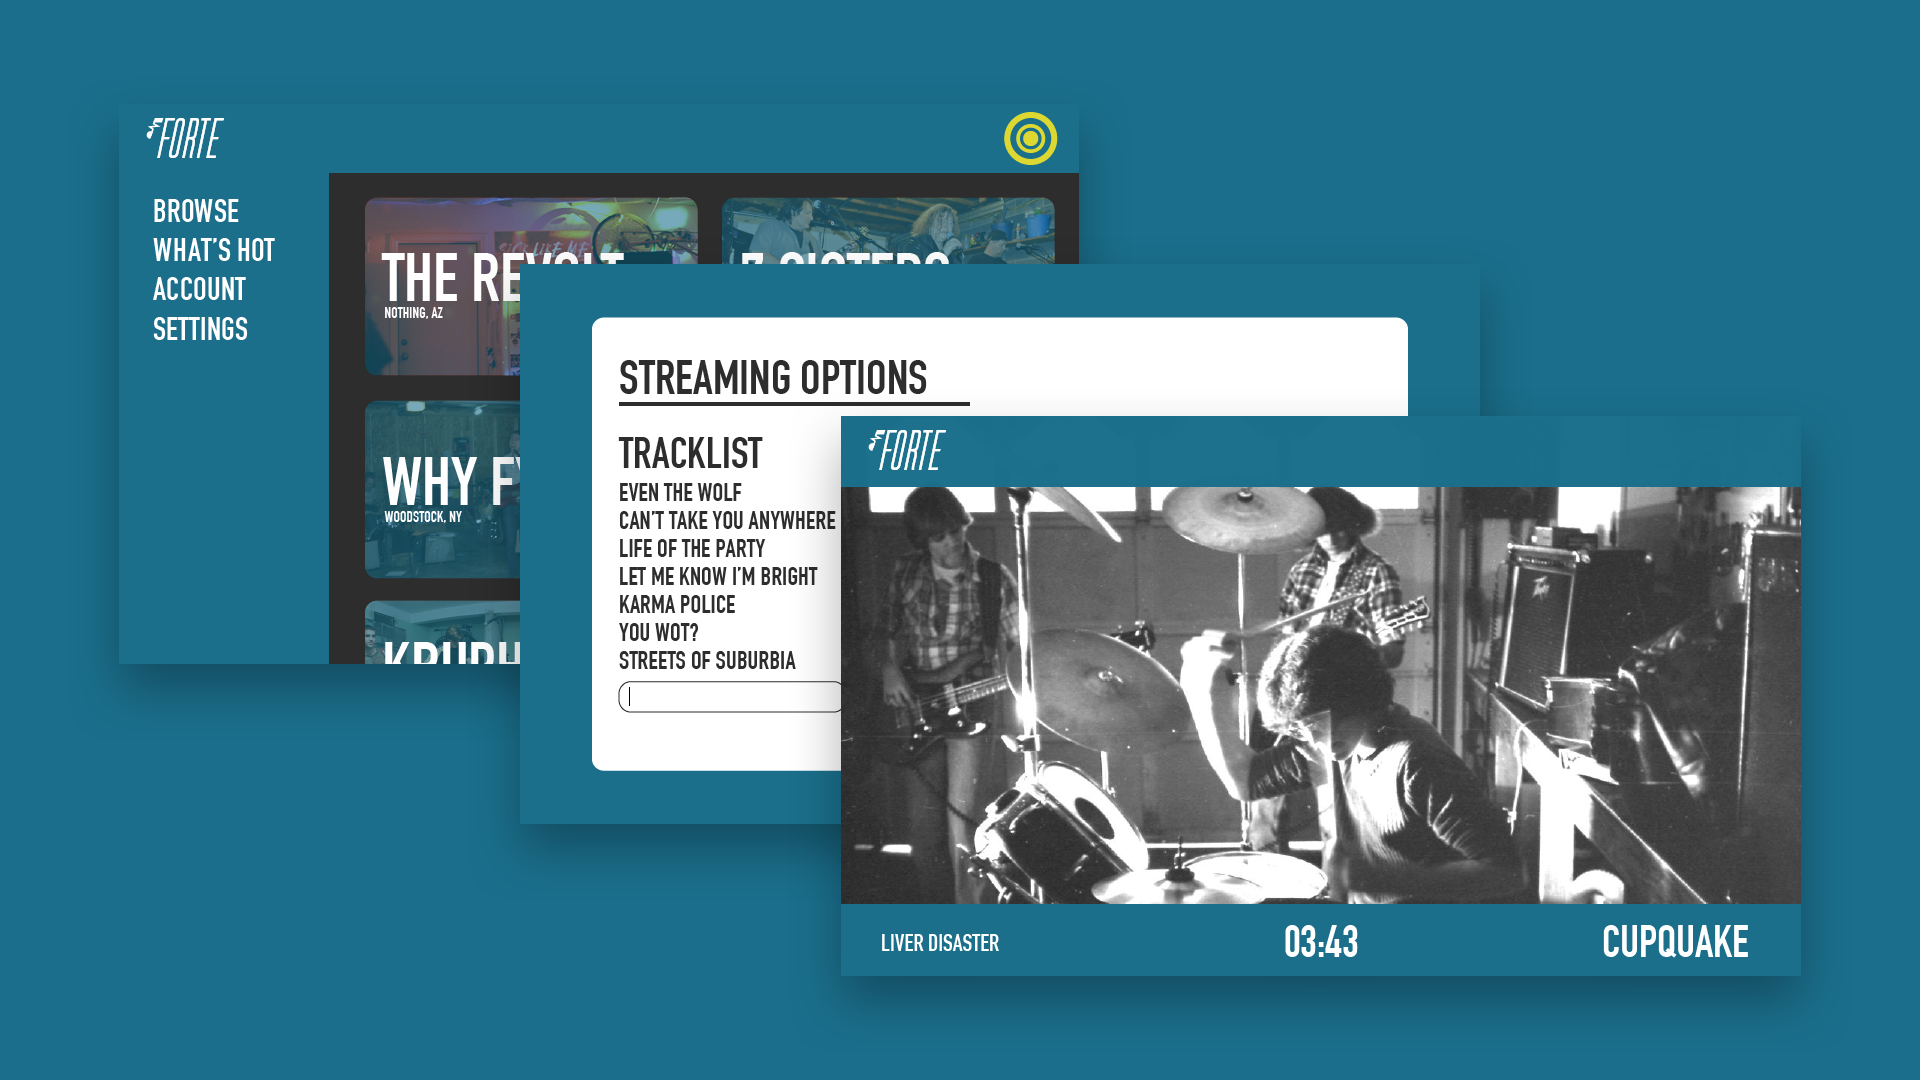 Premium users can create a custom setlist of performances and stream from their sessions to the entire world.